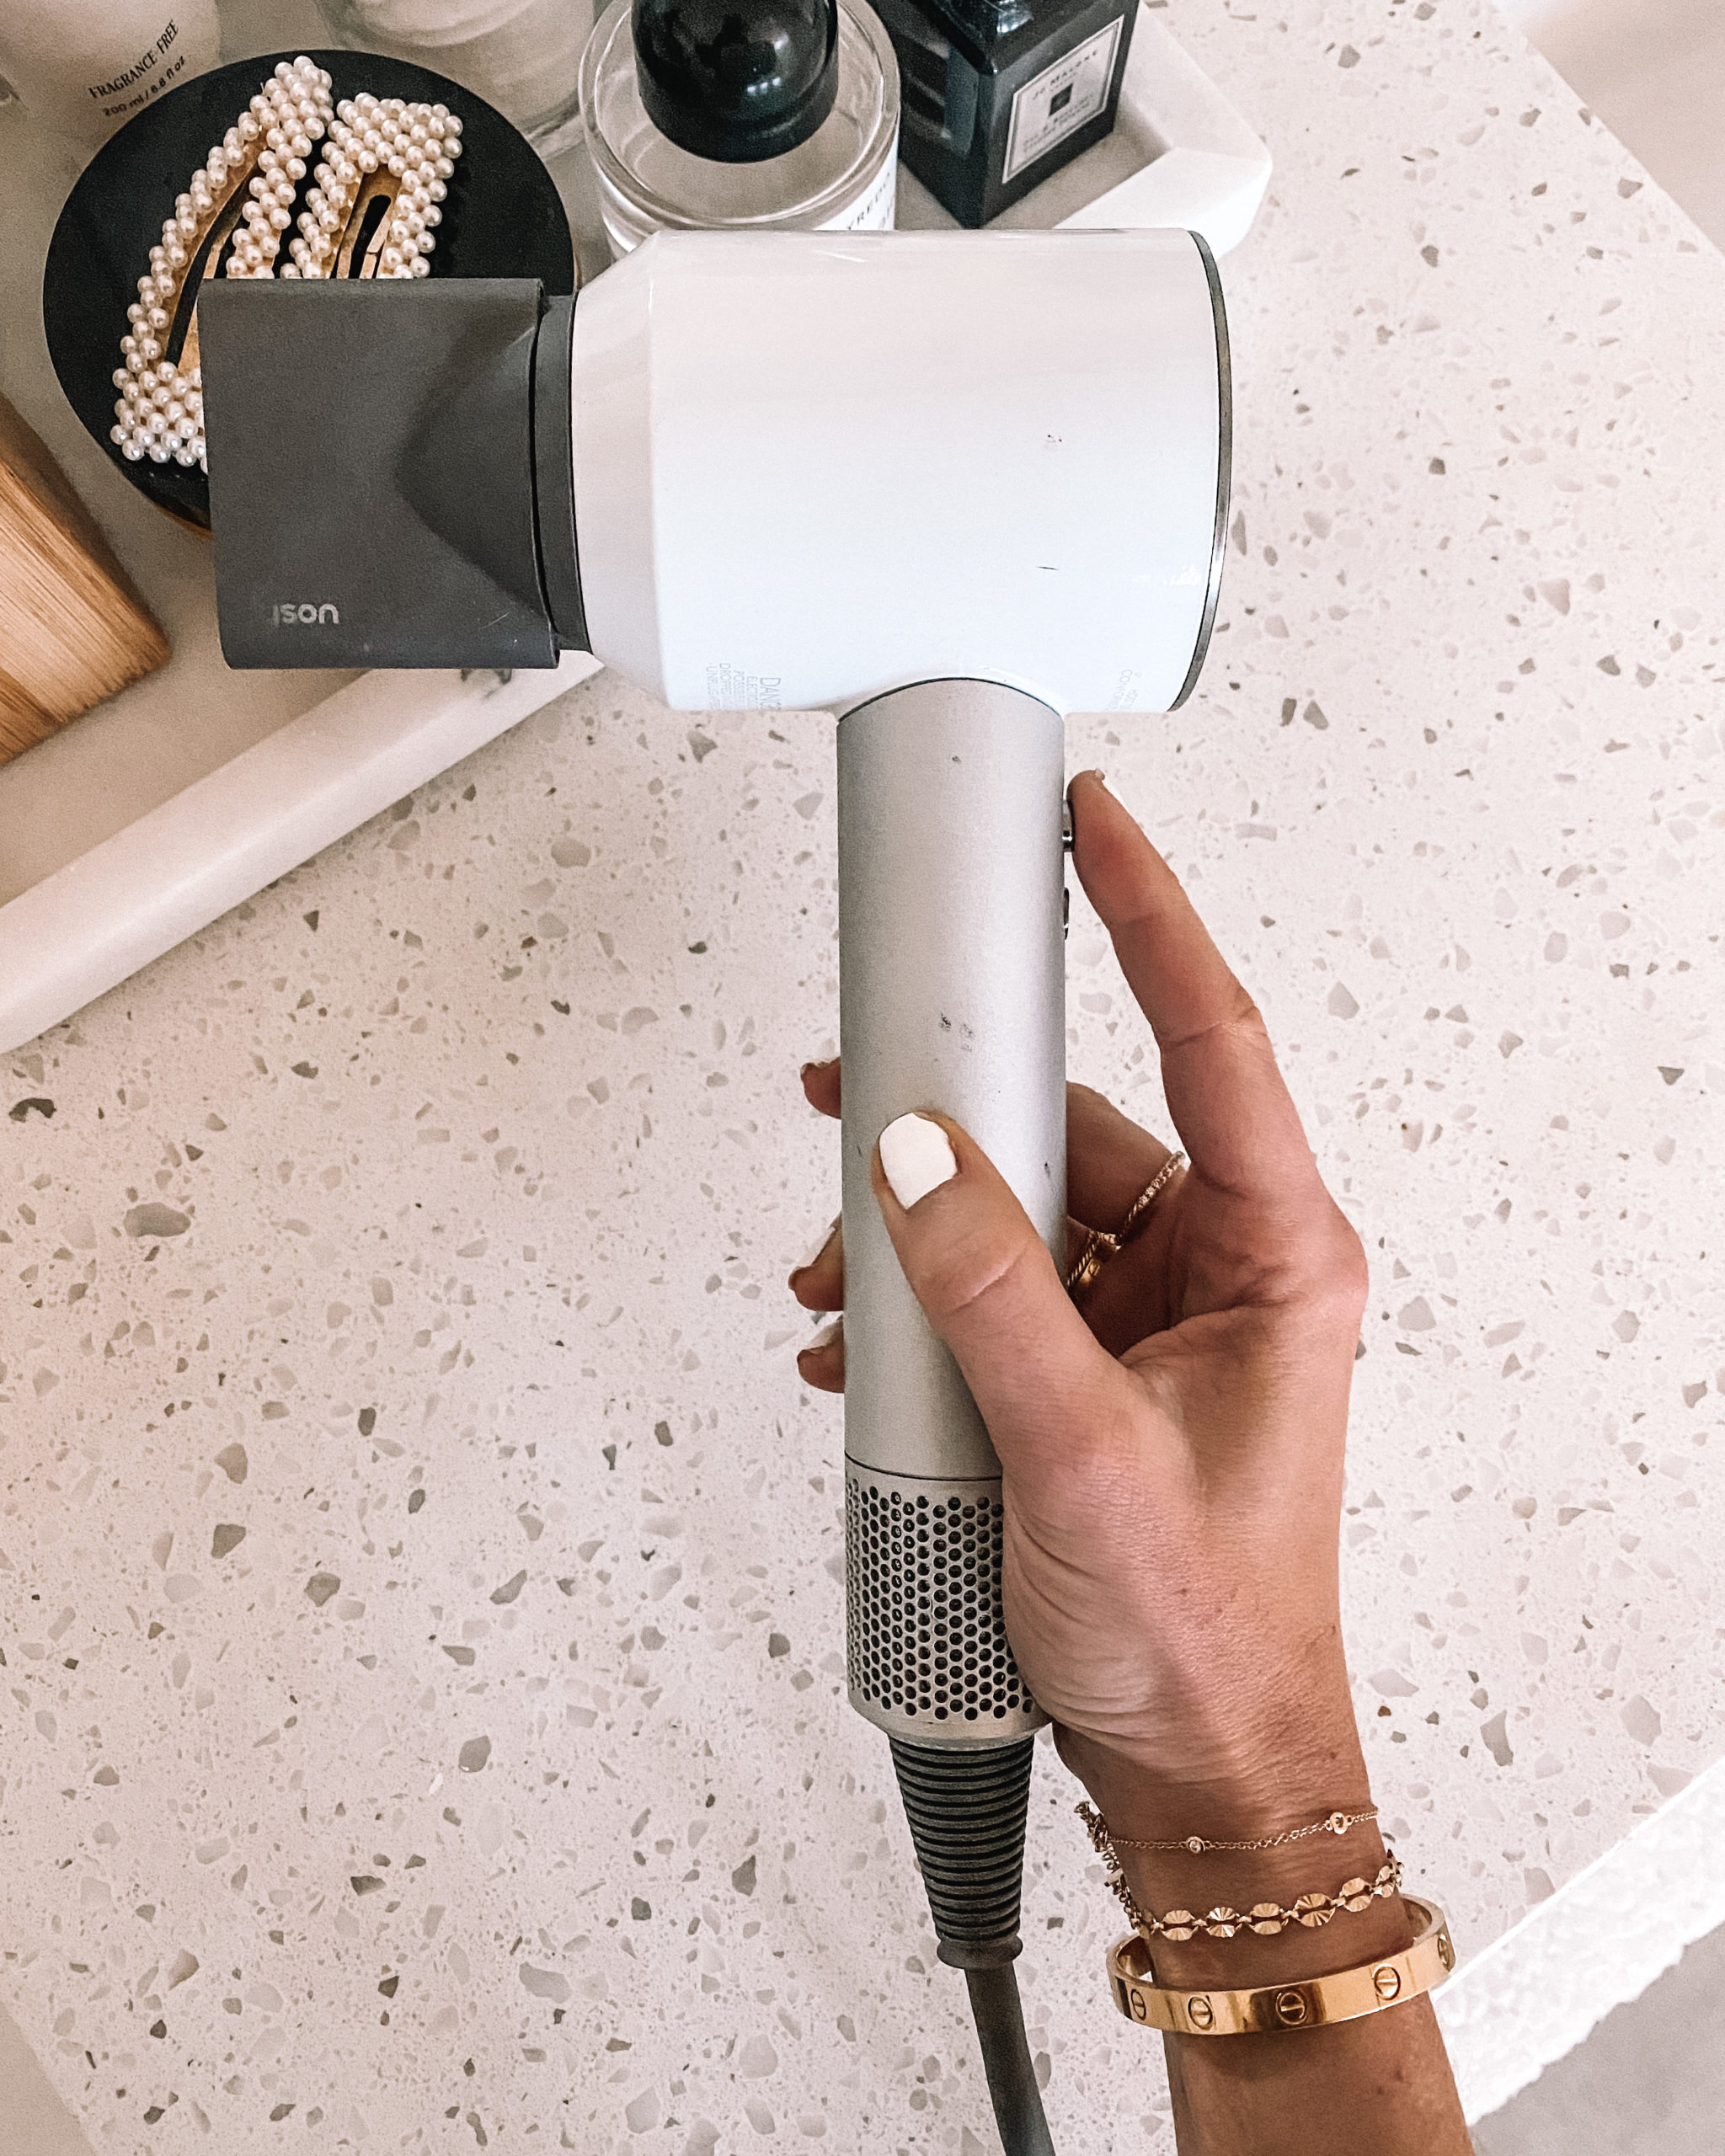 Fashion Jackson Dyson Supersonic Hair Dryer